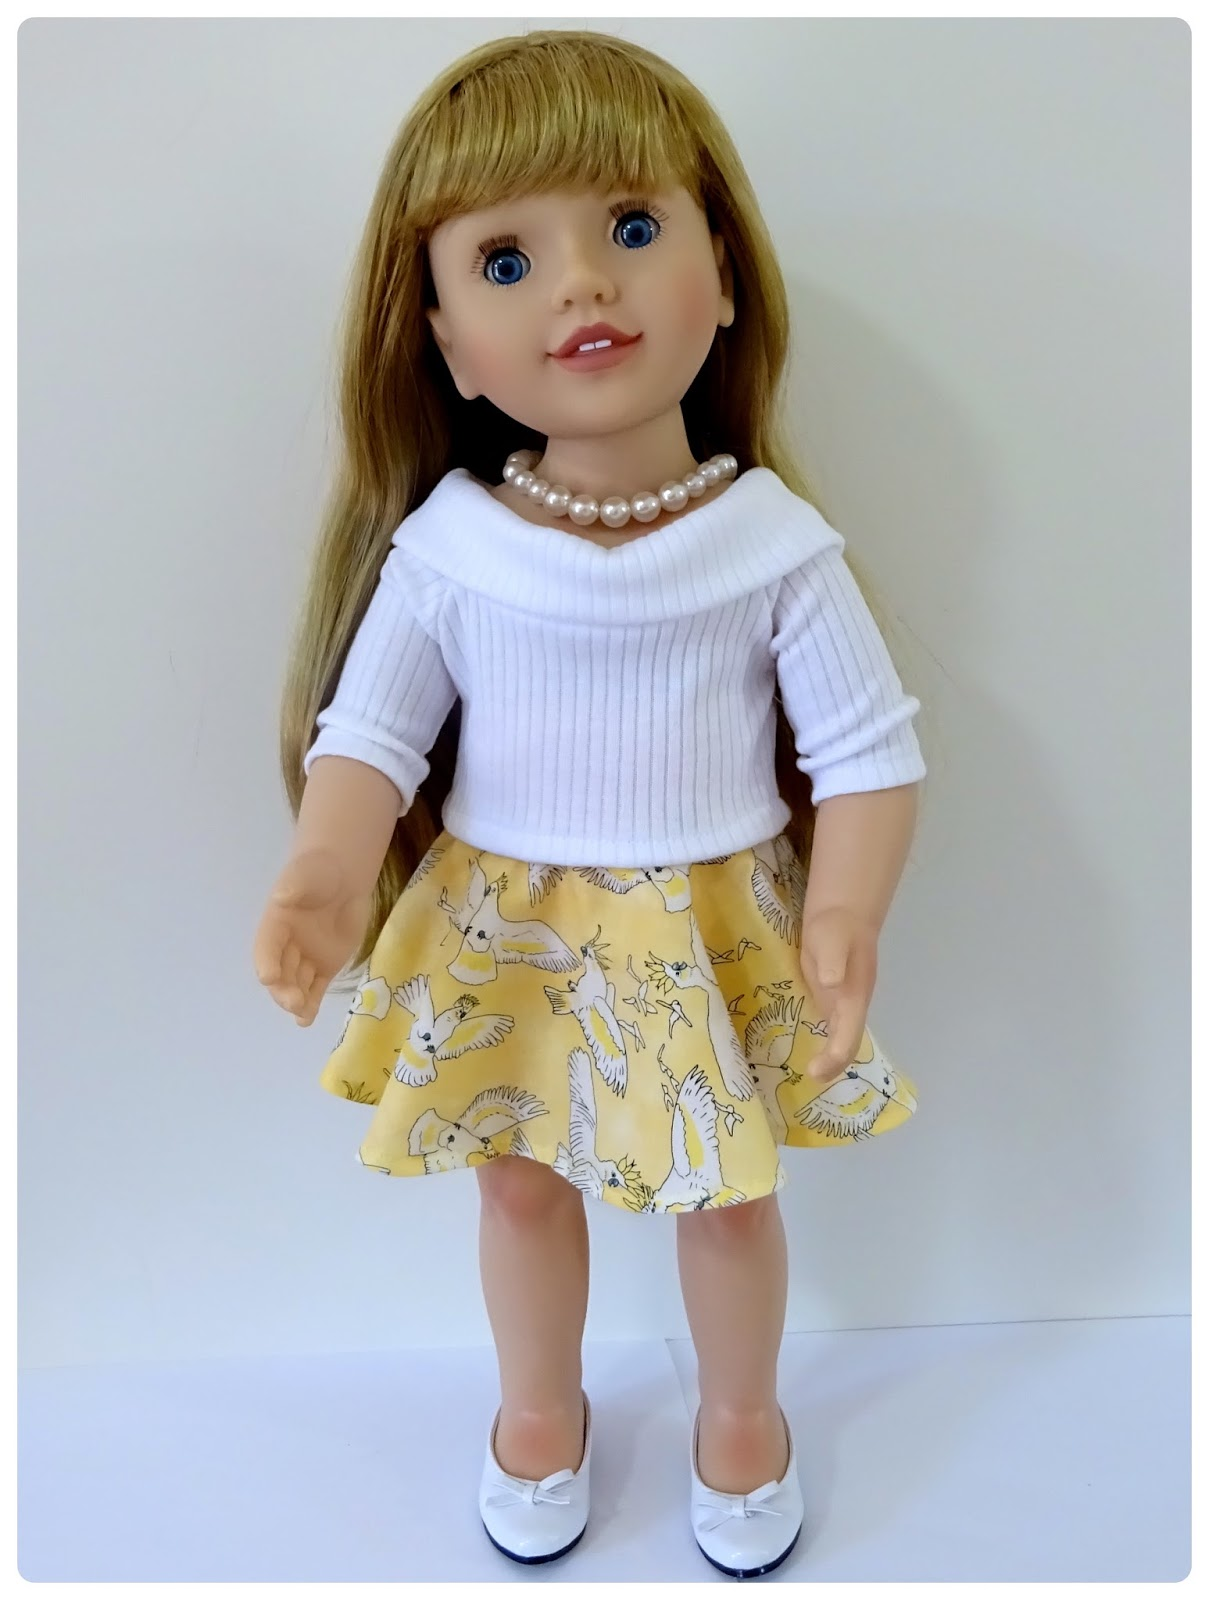 Doll Clothes Patterns by Valspierssews: Skater Skirt Doll Clothes ...